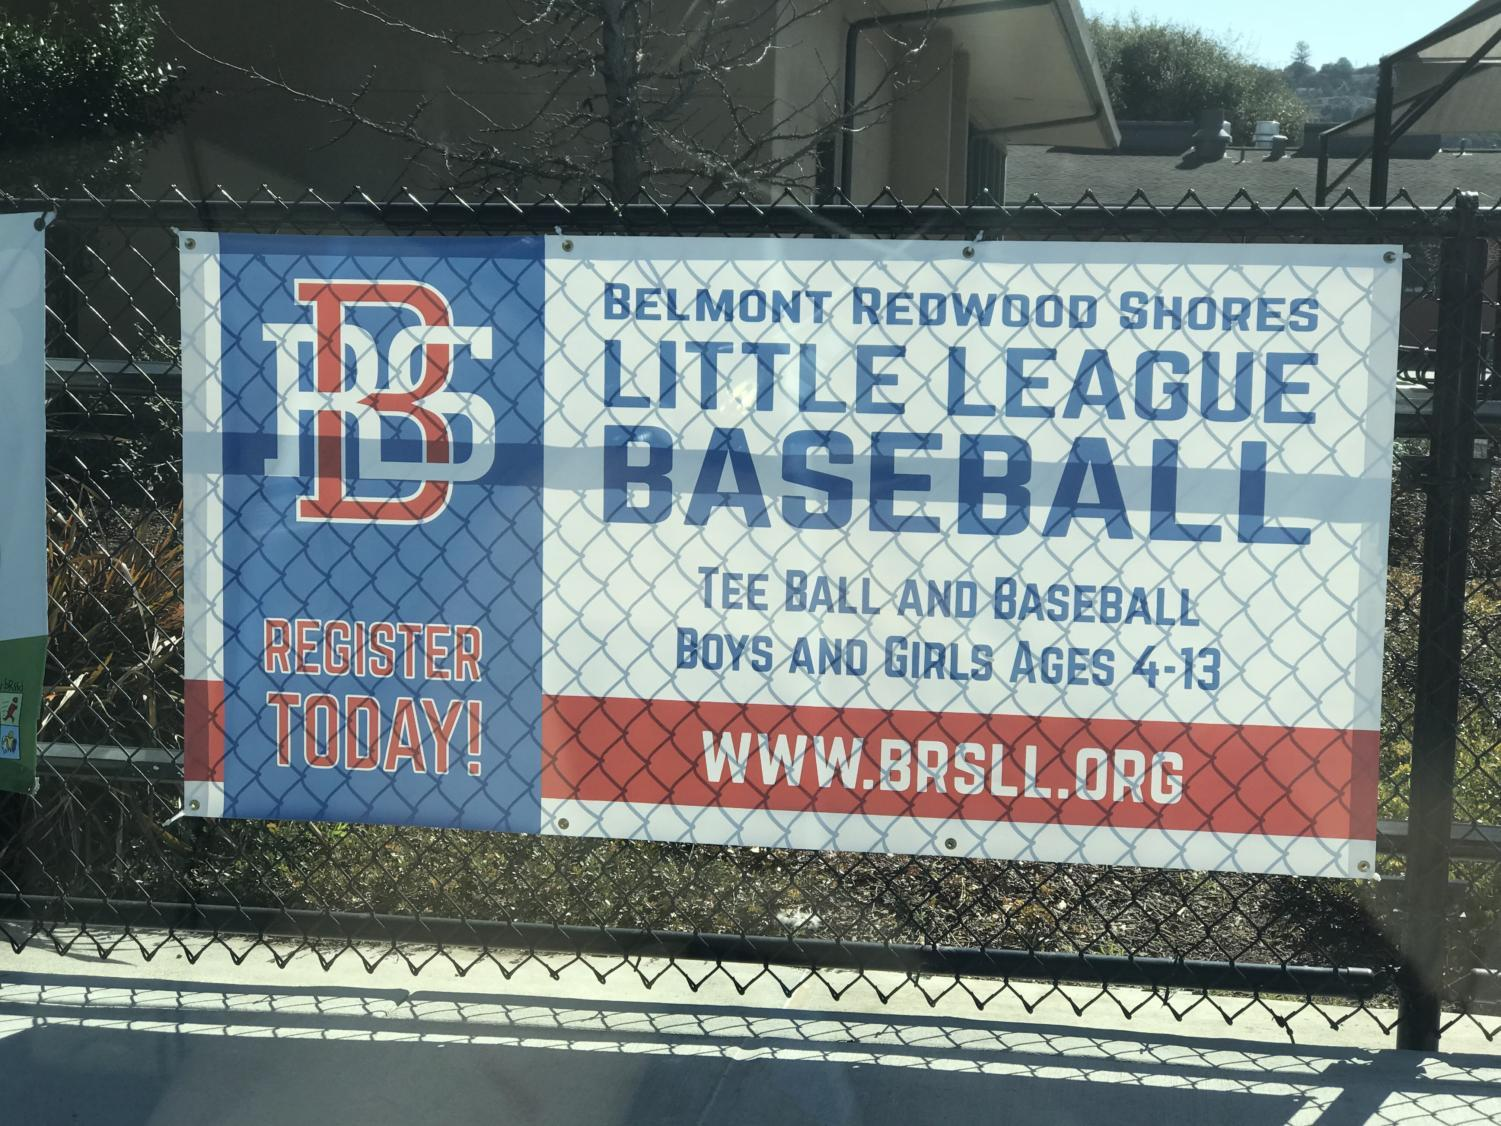 Banner posted in front of baseball field promoting BRSLL baseball.